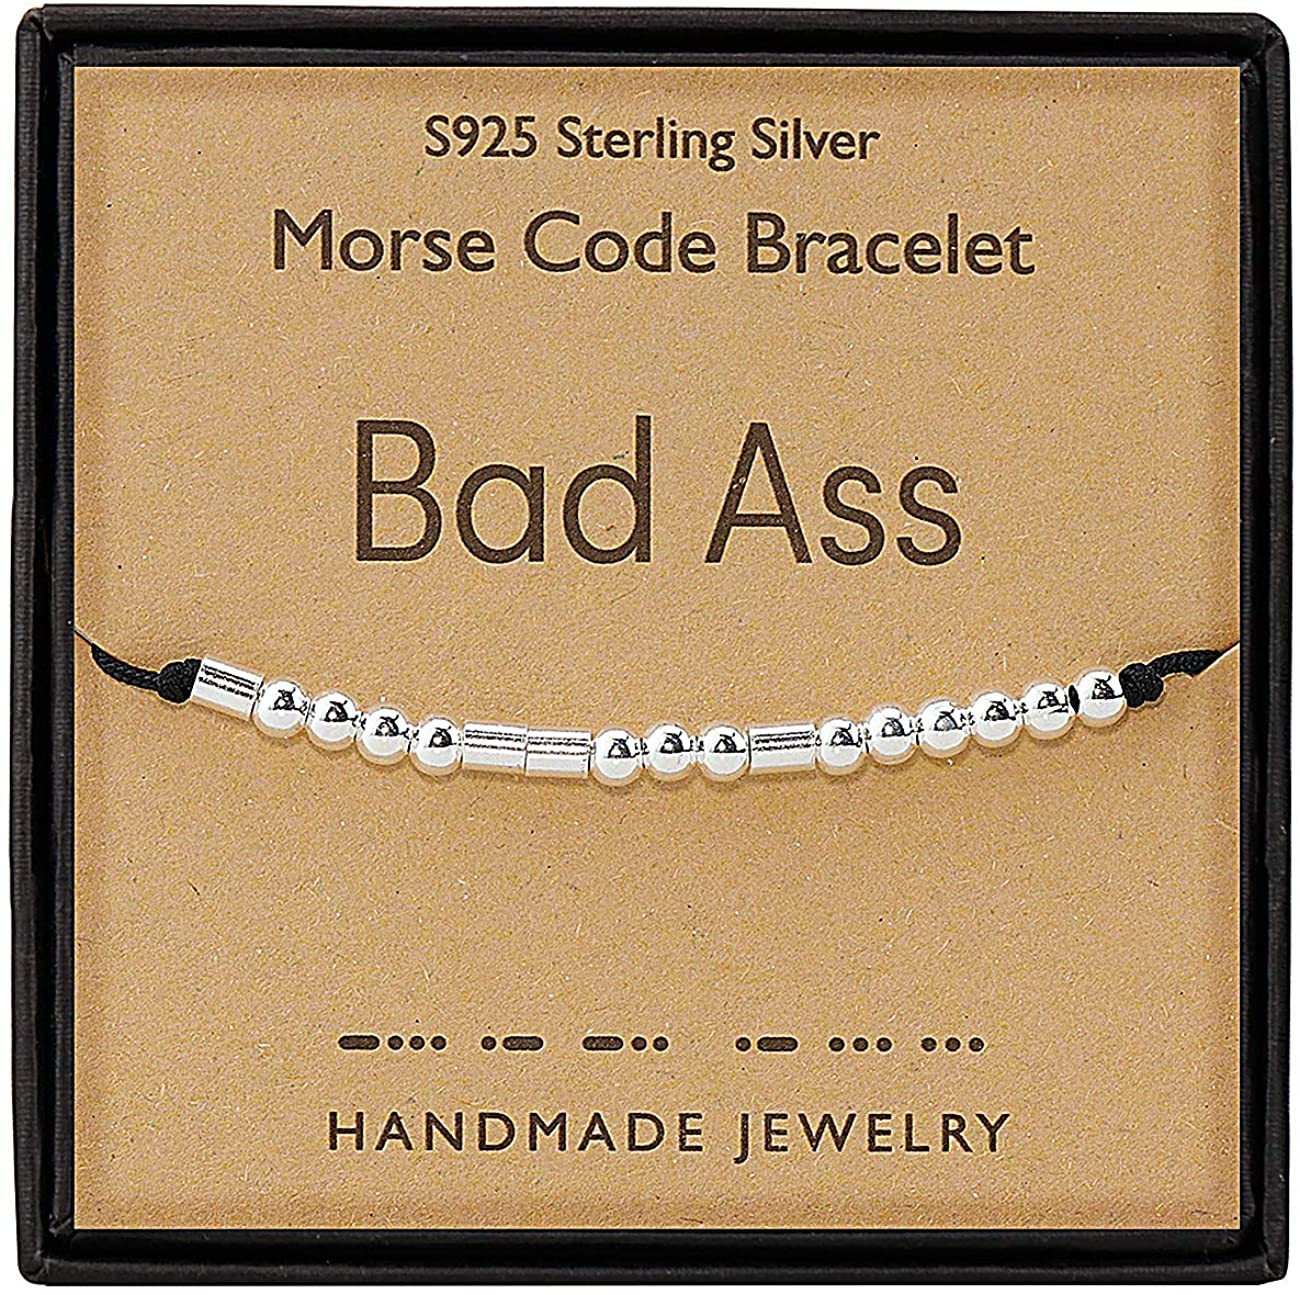 Gleamart Morse Code Bracelet 925 Sterling Silver Handmade Secret Message Beads Silk Cord Bangle Gift for Her